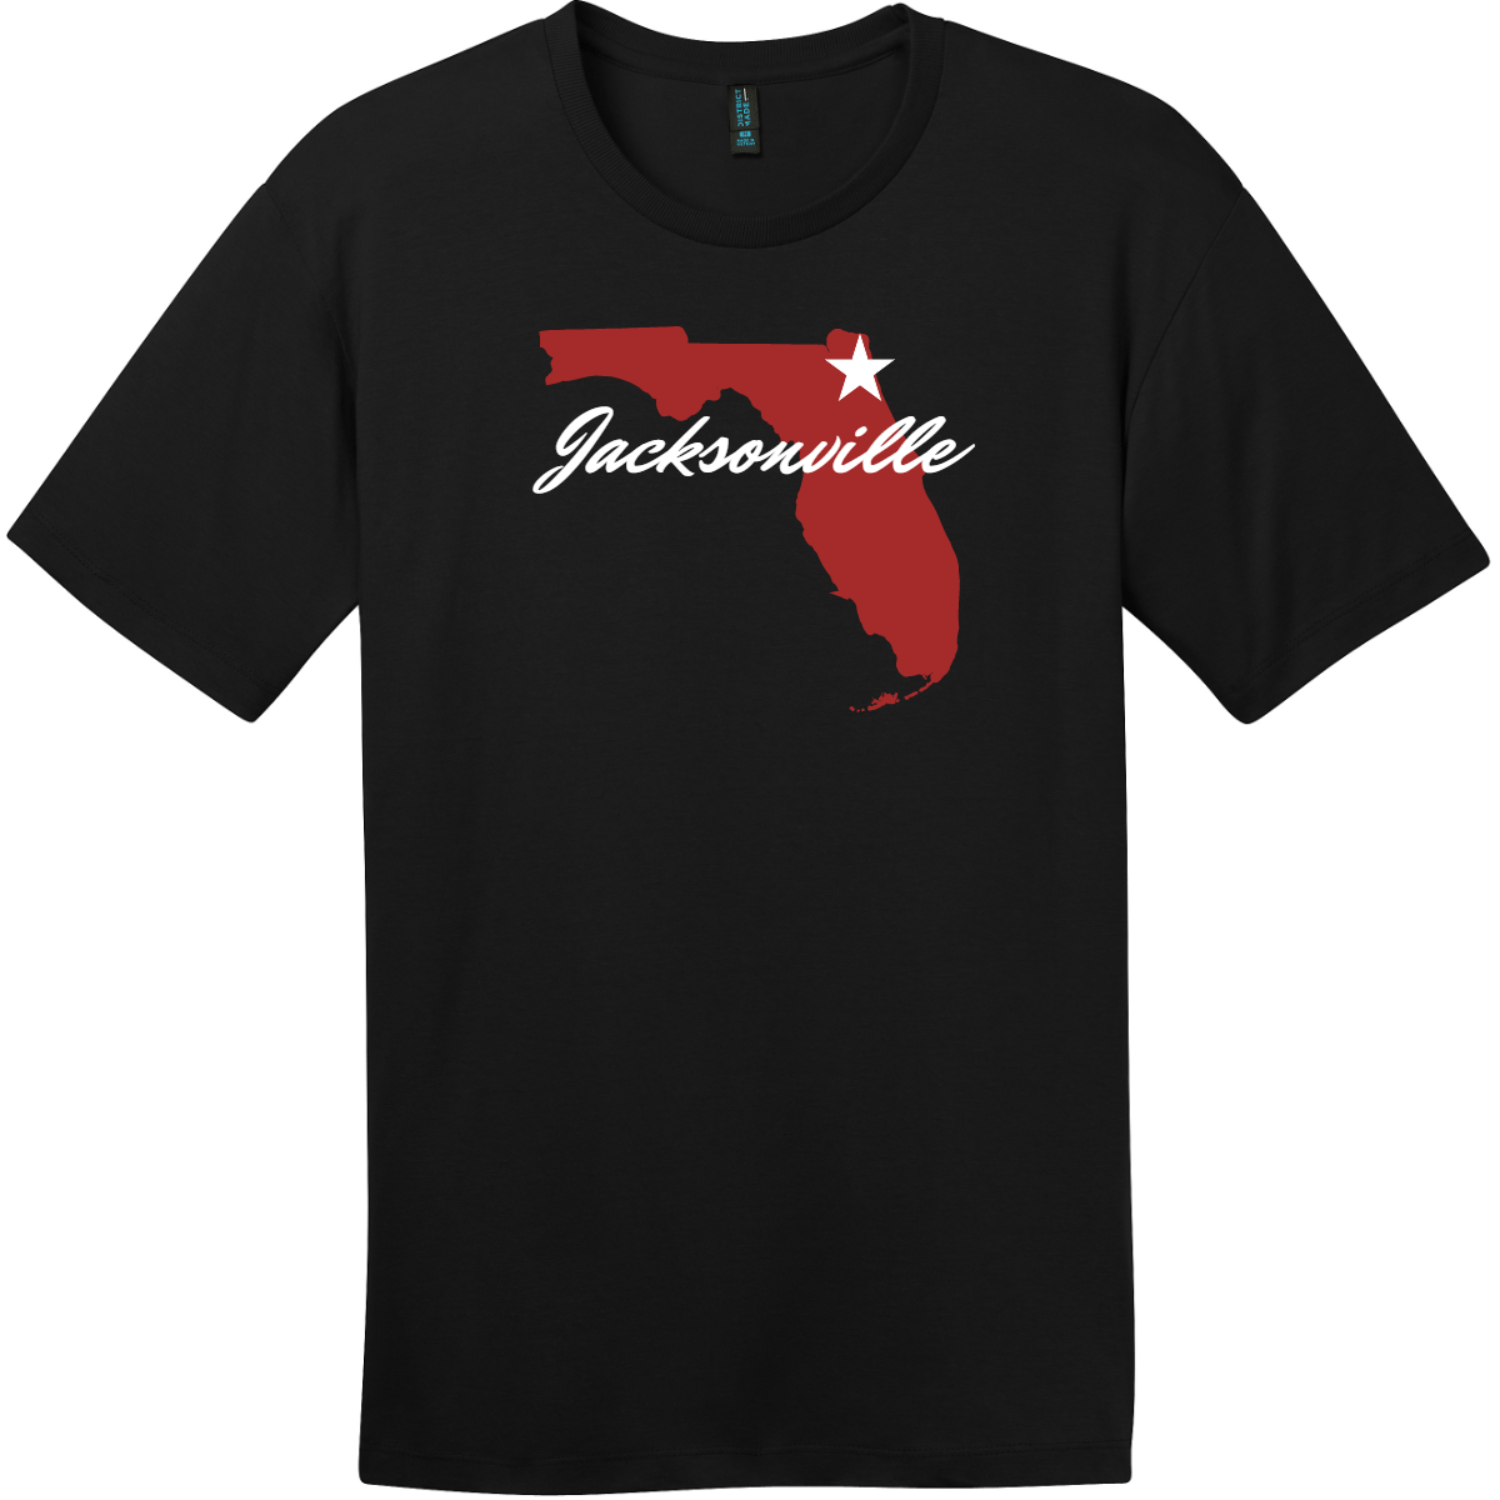 Jacksonville Florida State T-Shirt Jet Black District Perfect Weight Tee DT104